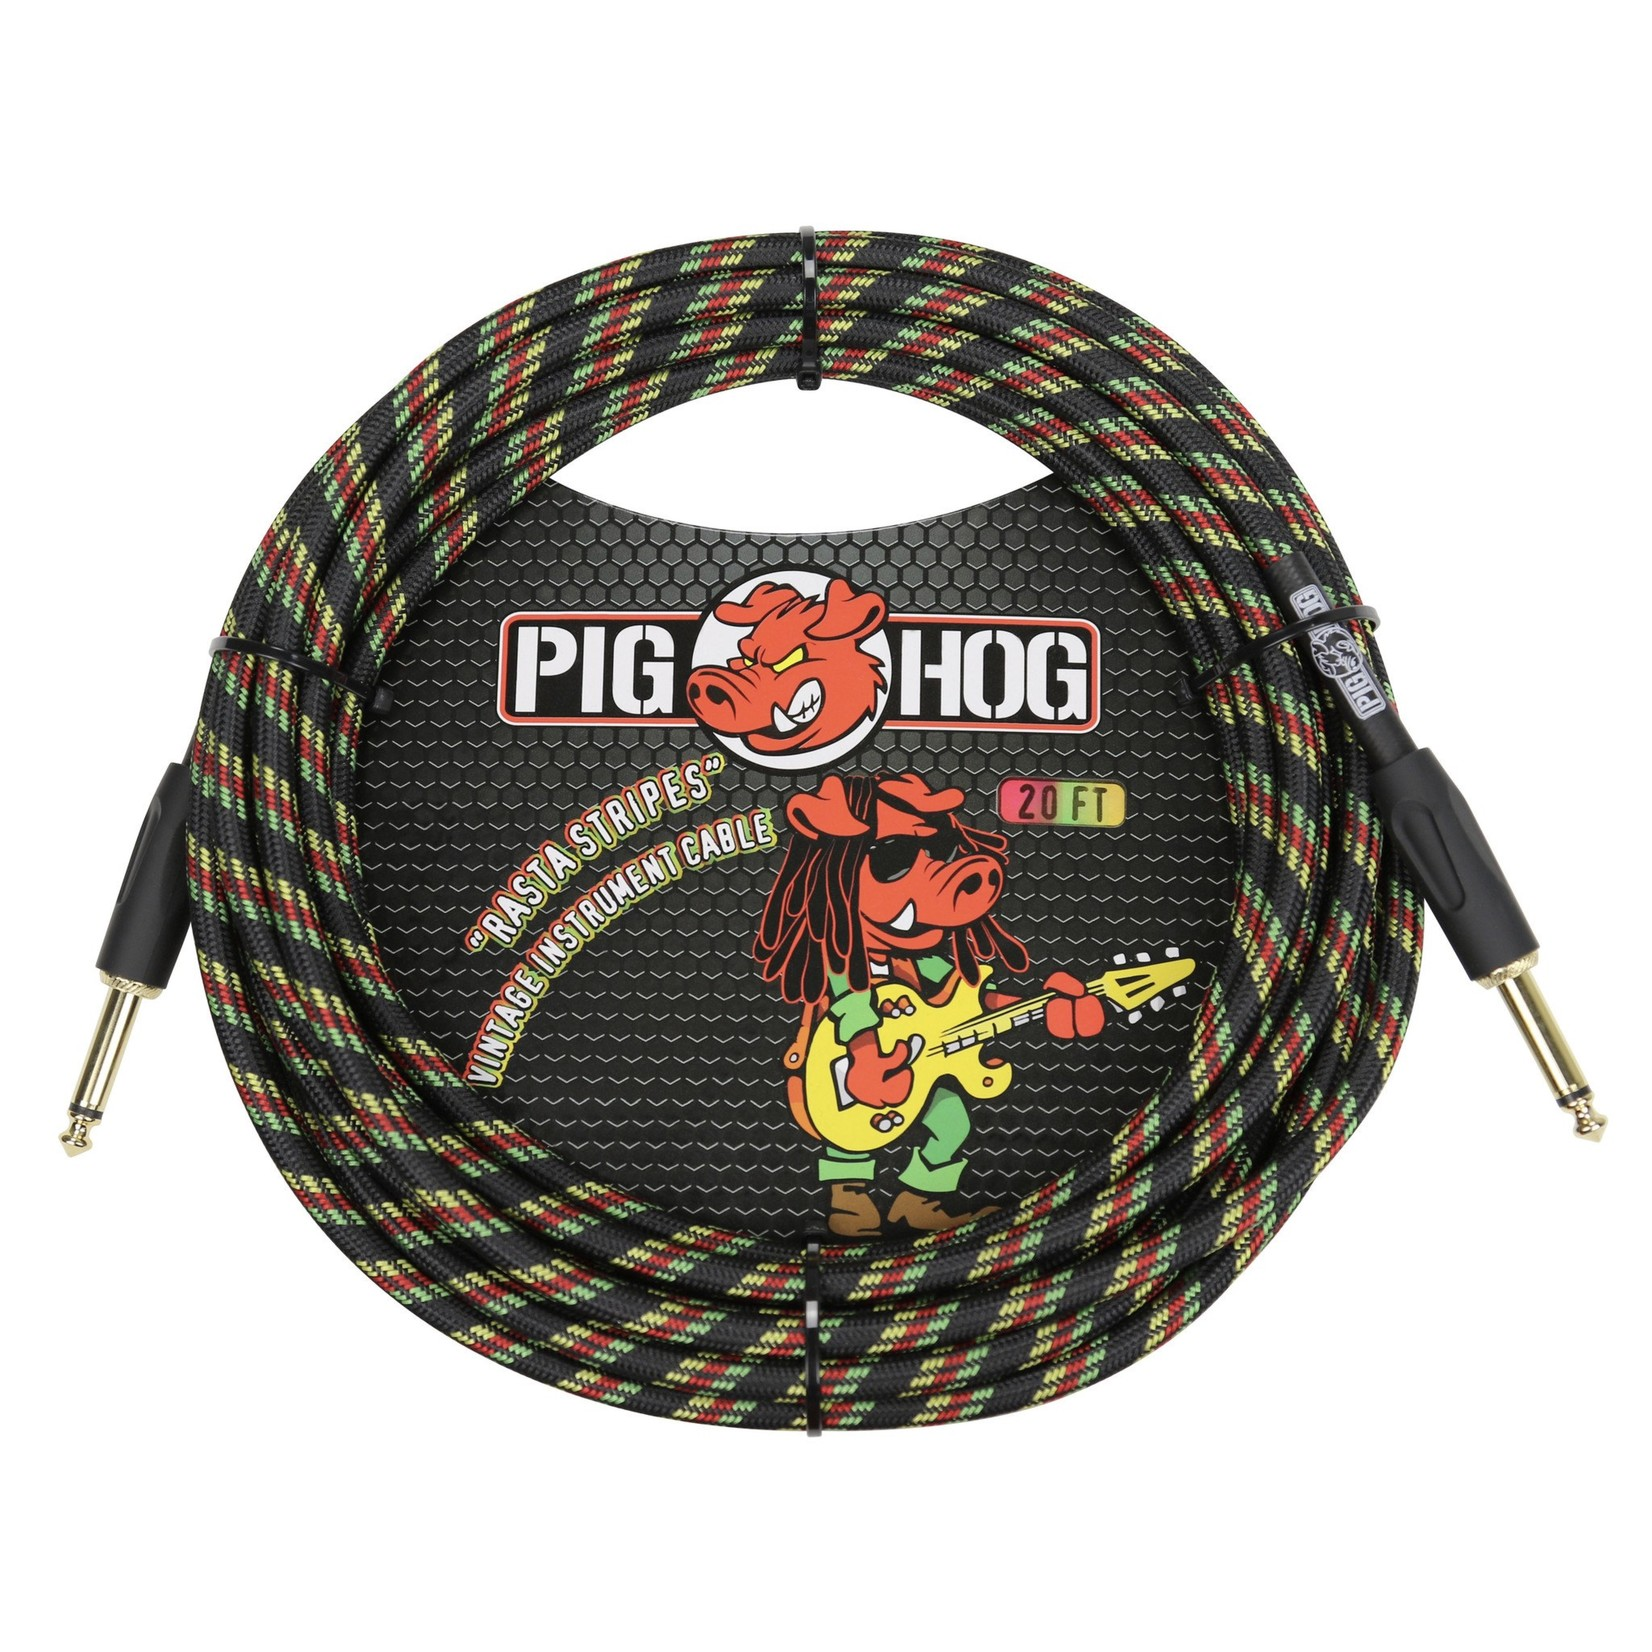 "Pig Hog Pig Hog ""Rasta Stripes"" 20-foot Vintage Woven Instrument Cable - 1/4"" Straight Plugs, Reggae"